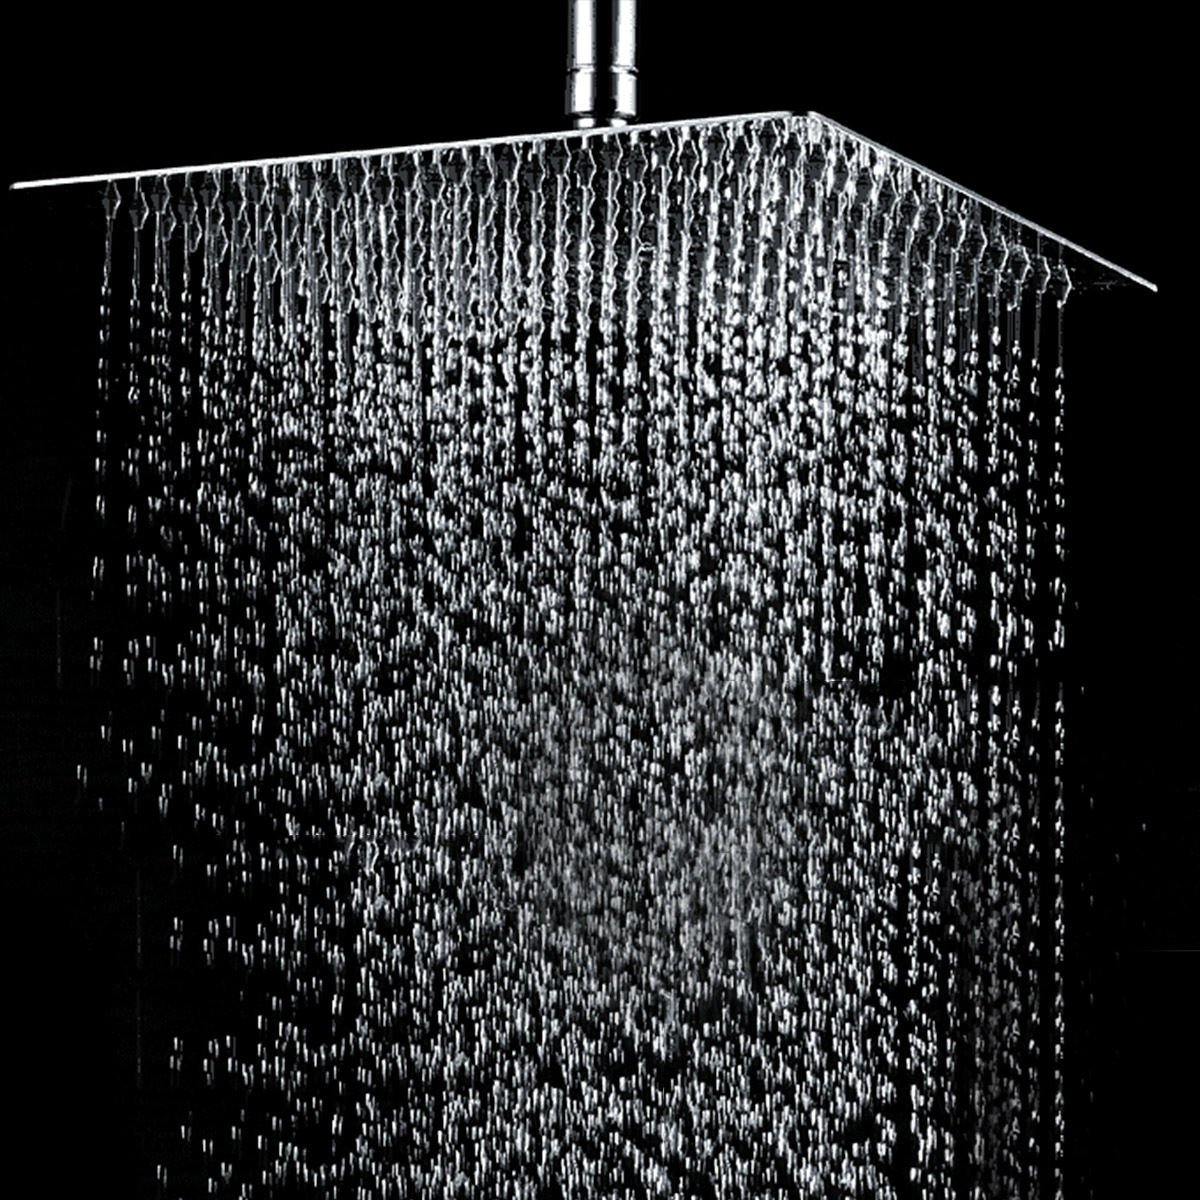 12'' Square Stainless Steel Body Rain Shower Head Rainfall Bathroom Top Sprayer Mirror Surface Modern Style Bath Connection Stand 1/2'' Brand New